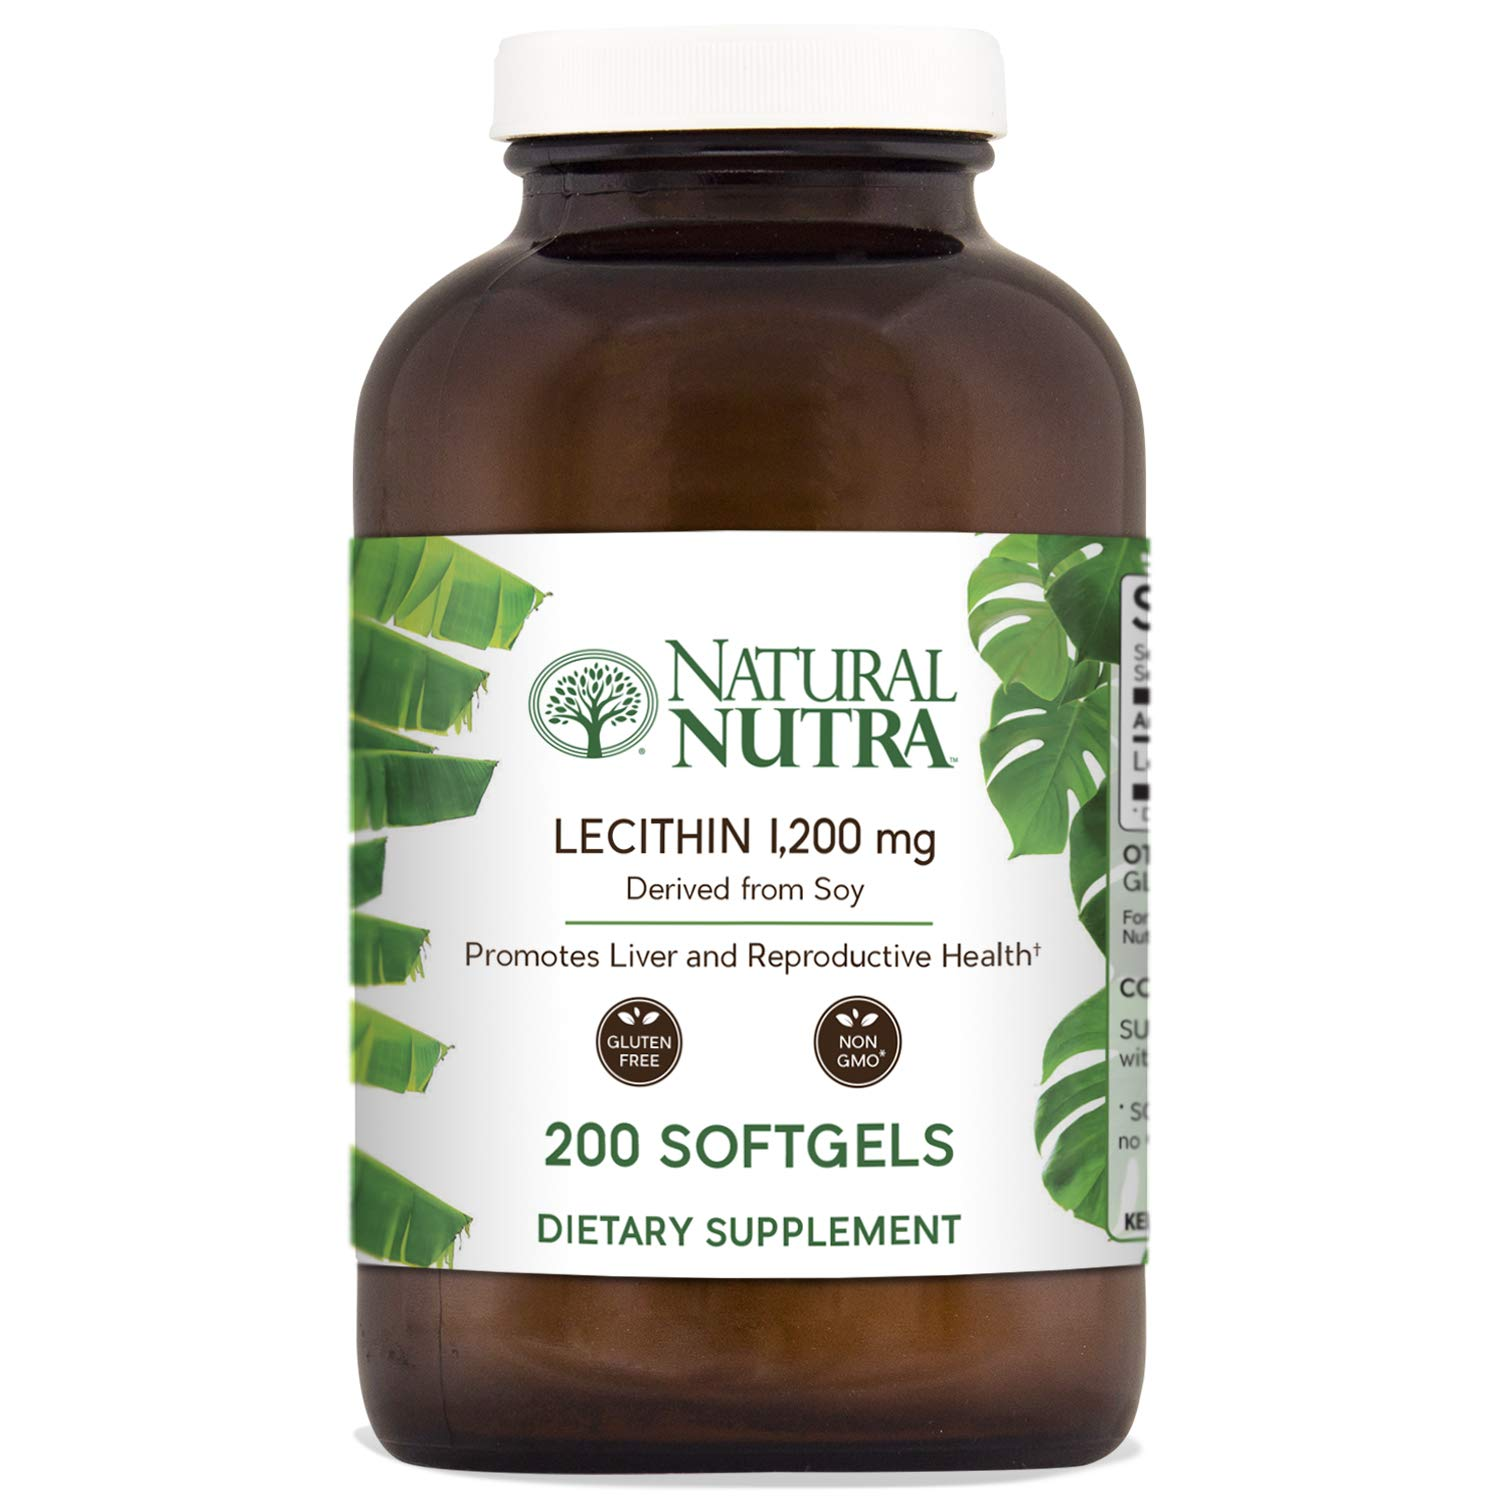 Natural Nutra Soy Lecithin Dietary Supplement from Soybean Oil, Non GMO, High Potency, 1200 mg, 200 Softgels by Natural Nutra